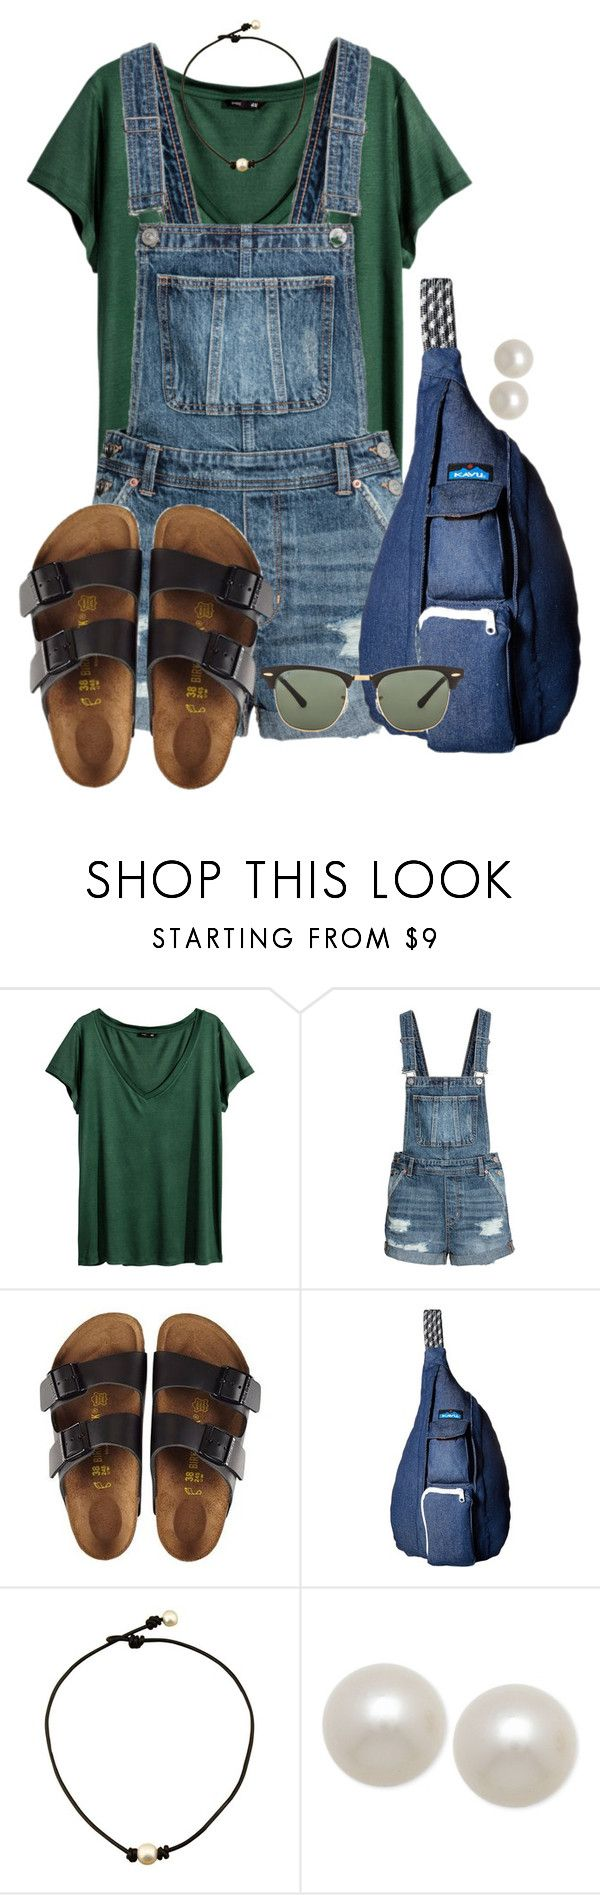 """""""Good morning!!!"""" by annaewakefield ❤ liked on Polyvore featuring H&M, Birkenstock, Kavu, Honora and Ray-Ban"""